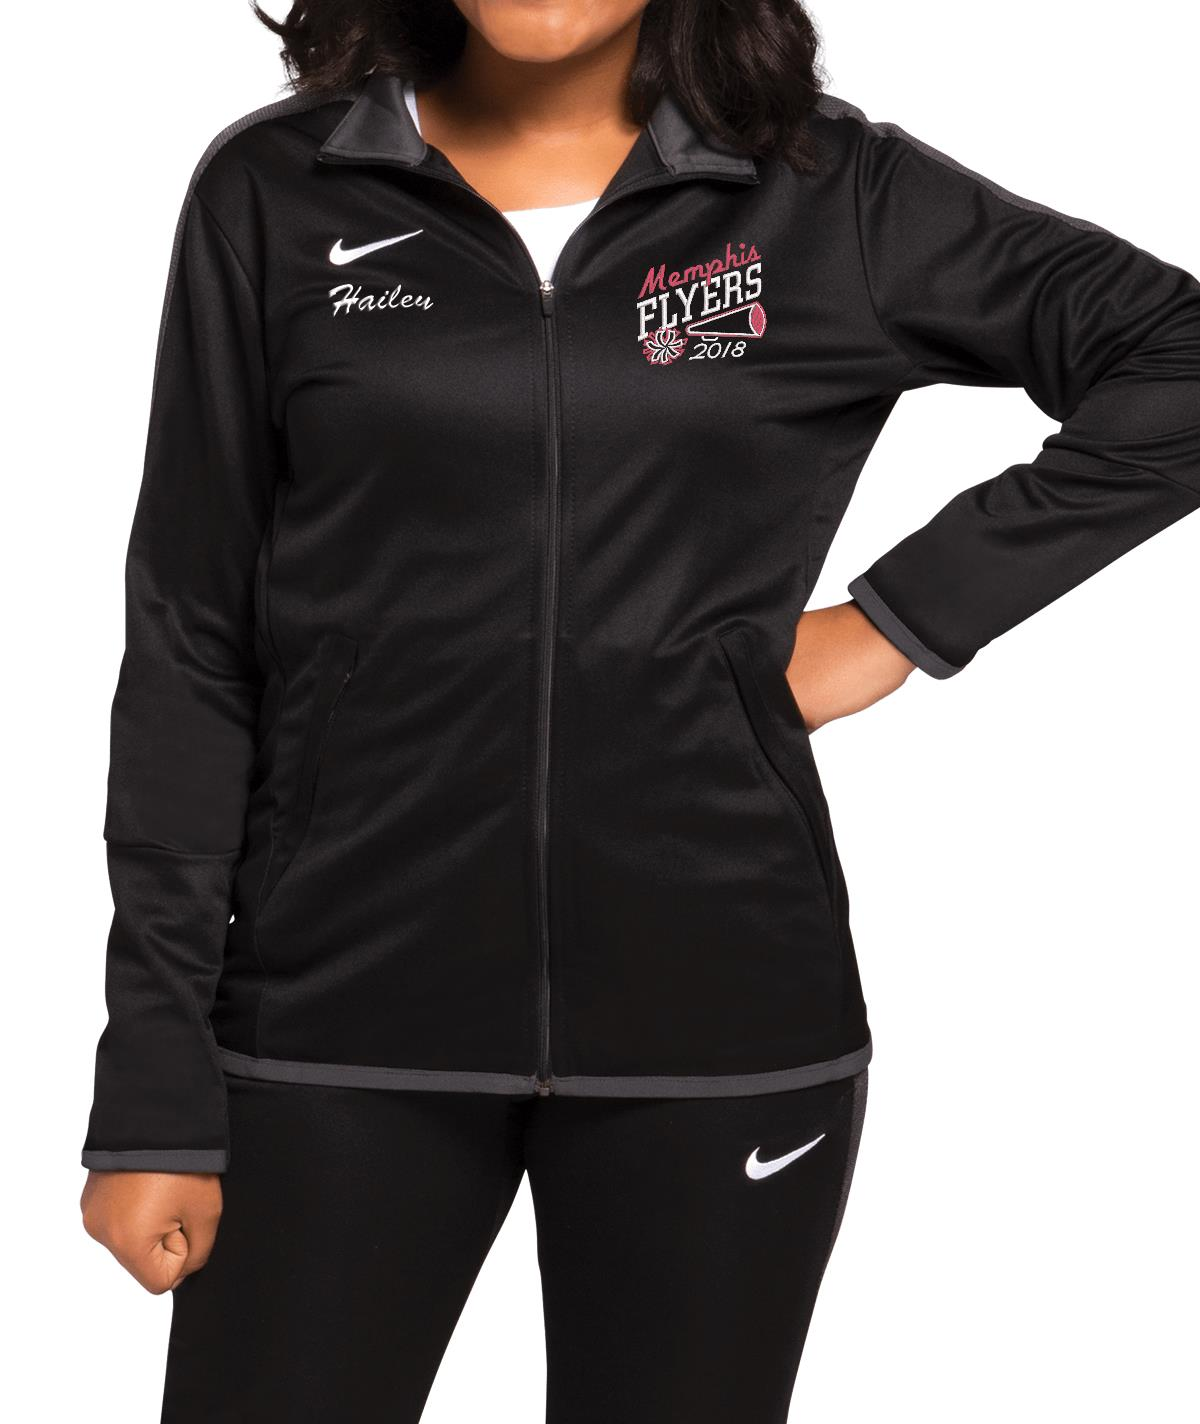 Nike Women's Epic Training Jacket